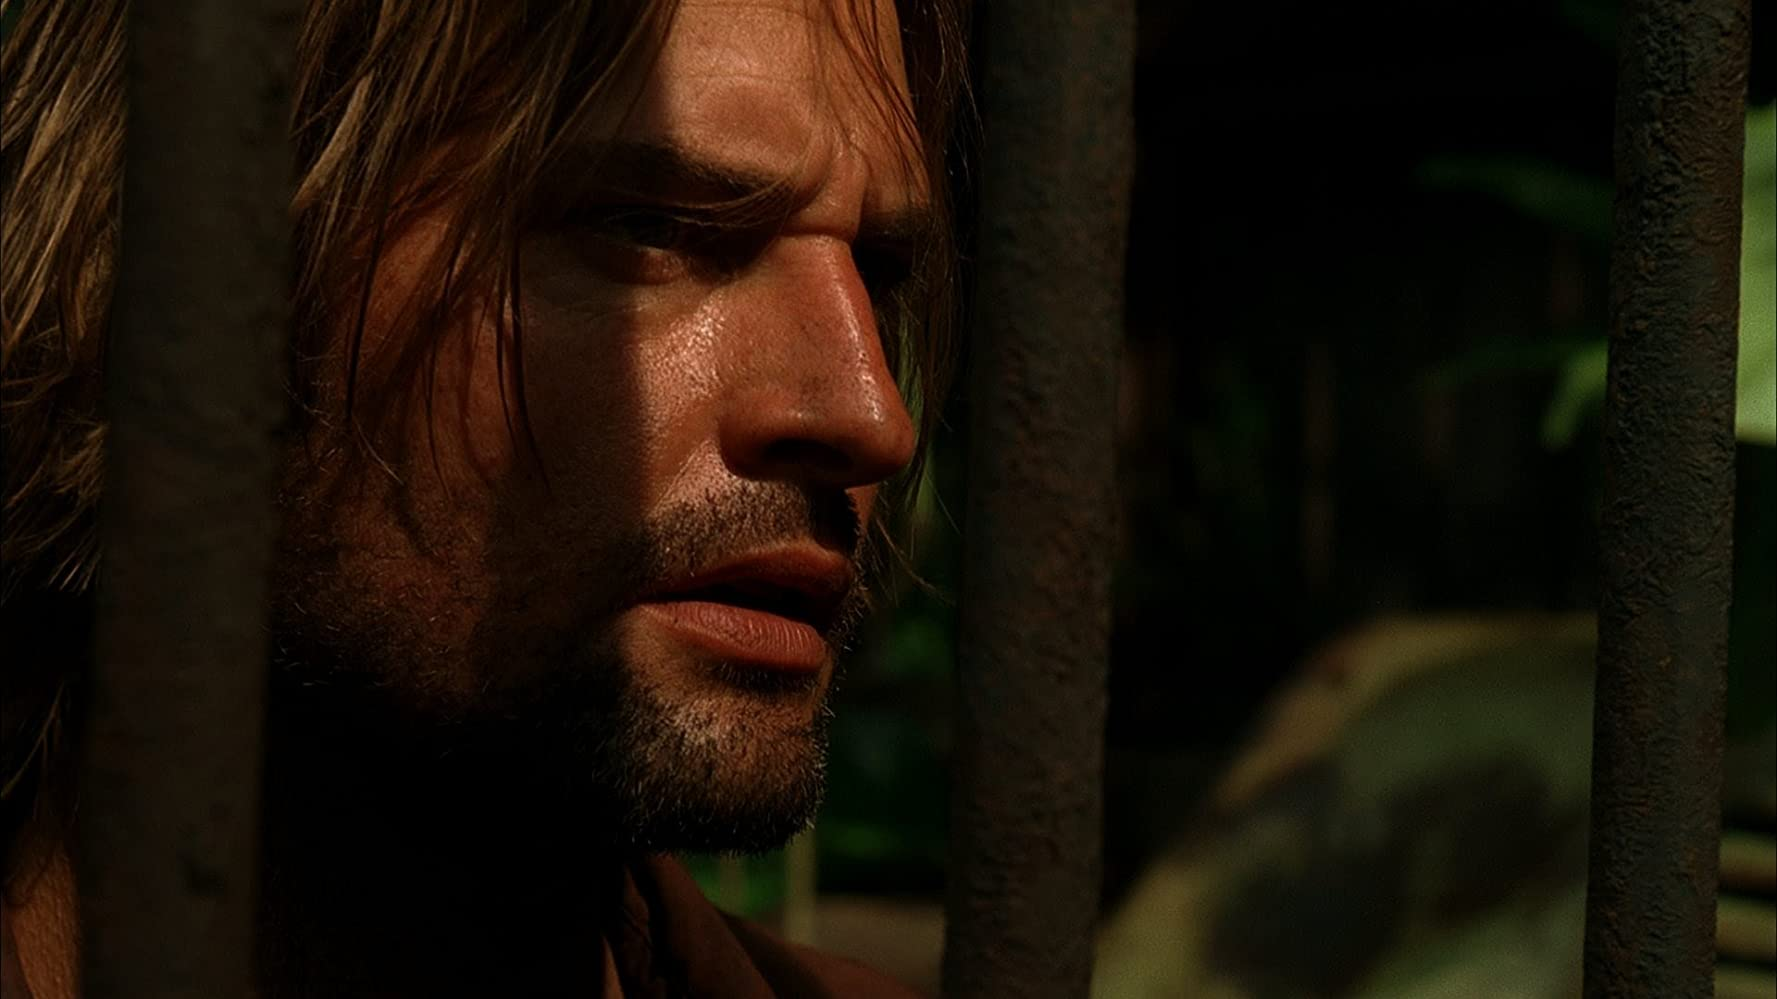 Josh Holloway in Lost (2004)